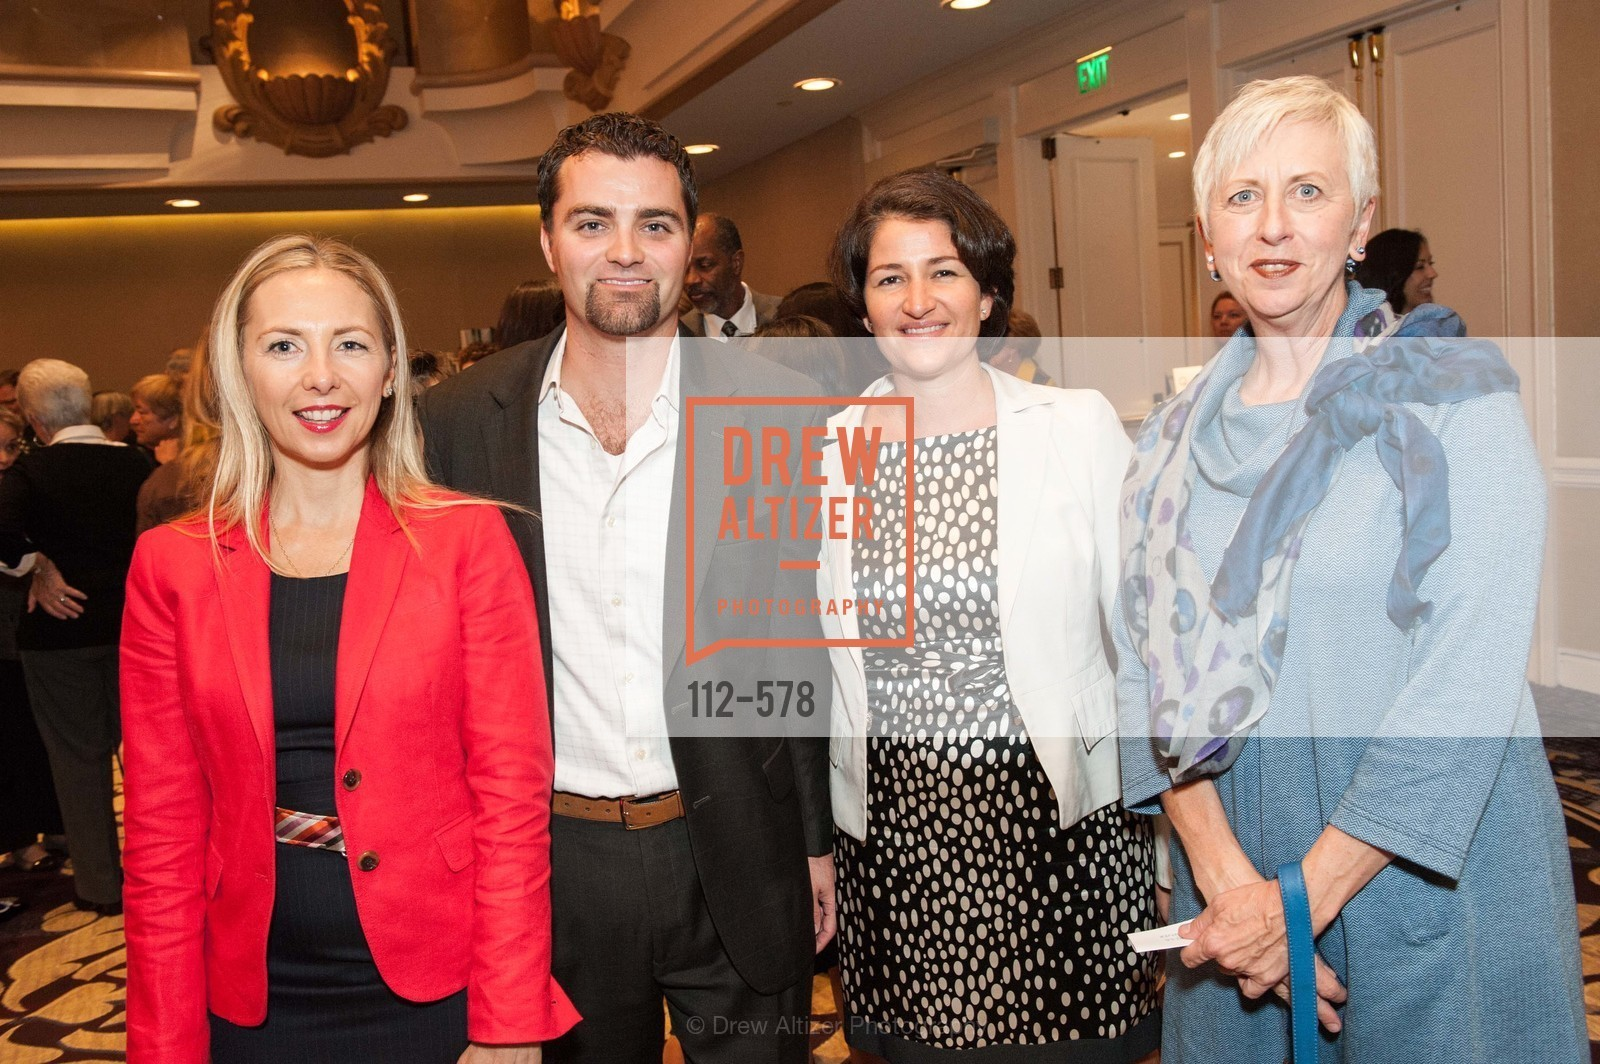 Leslie Santos, Ethan Smith, Debbie Landers, Theresa Bonner, HOMELESS PRENATAL Annual Luncheon 2014, US, October 1st, 2014,Drew Altizer, Drew Altizer Photography, full-service agency, private events, San Francisco photographer, photographer california